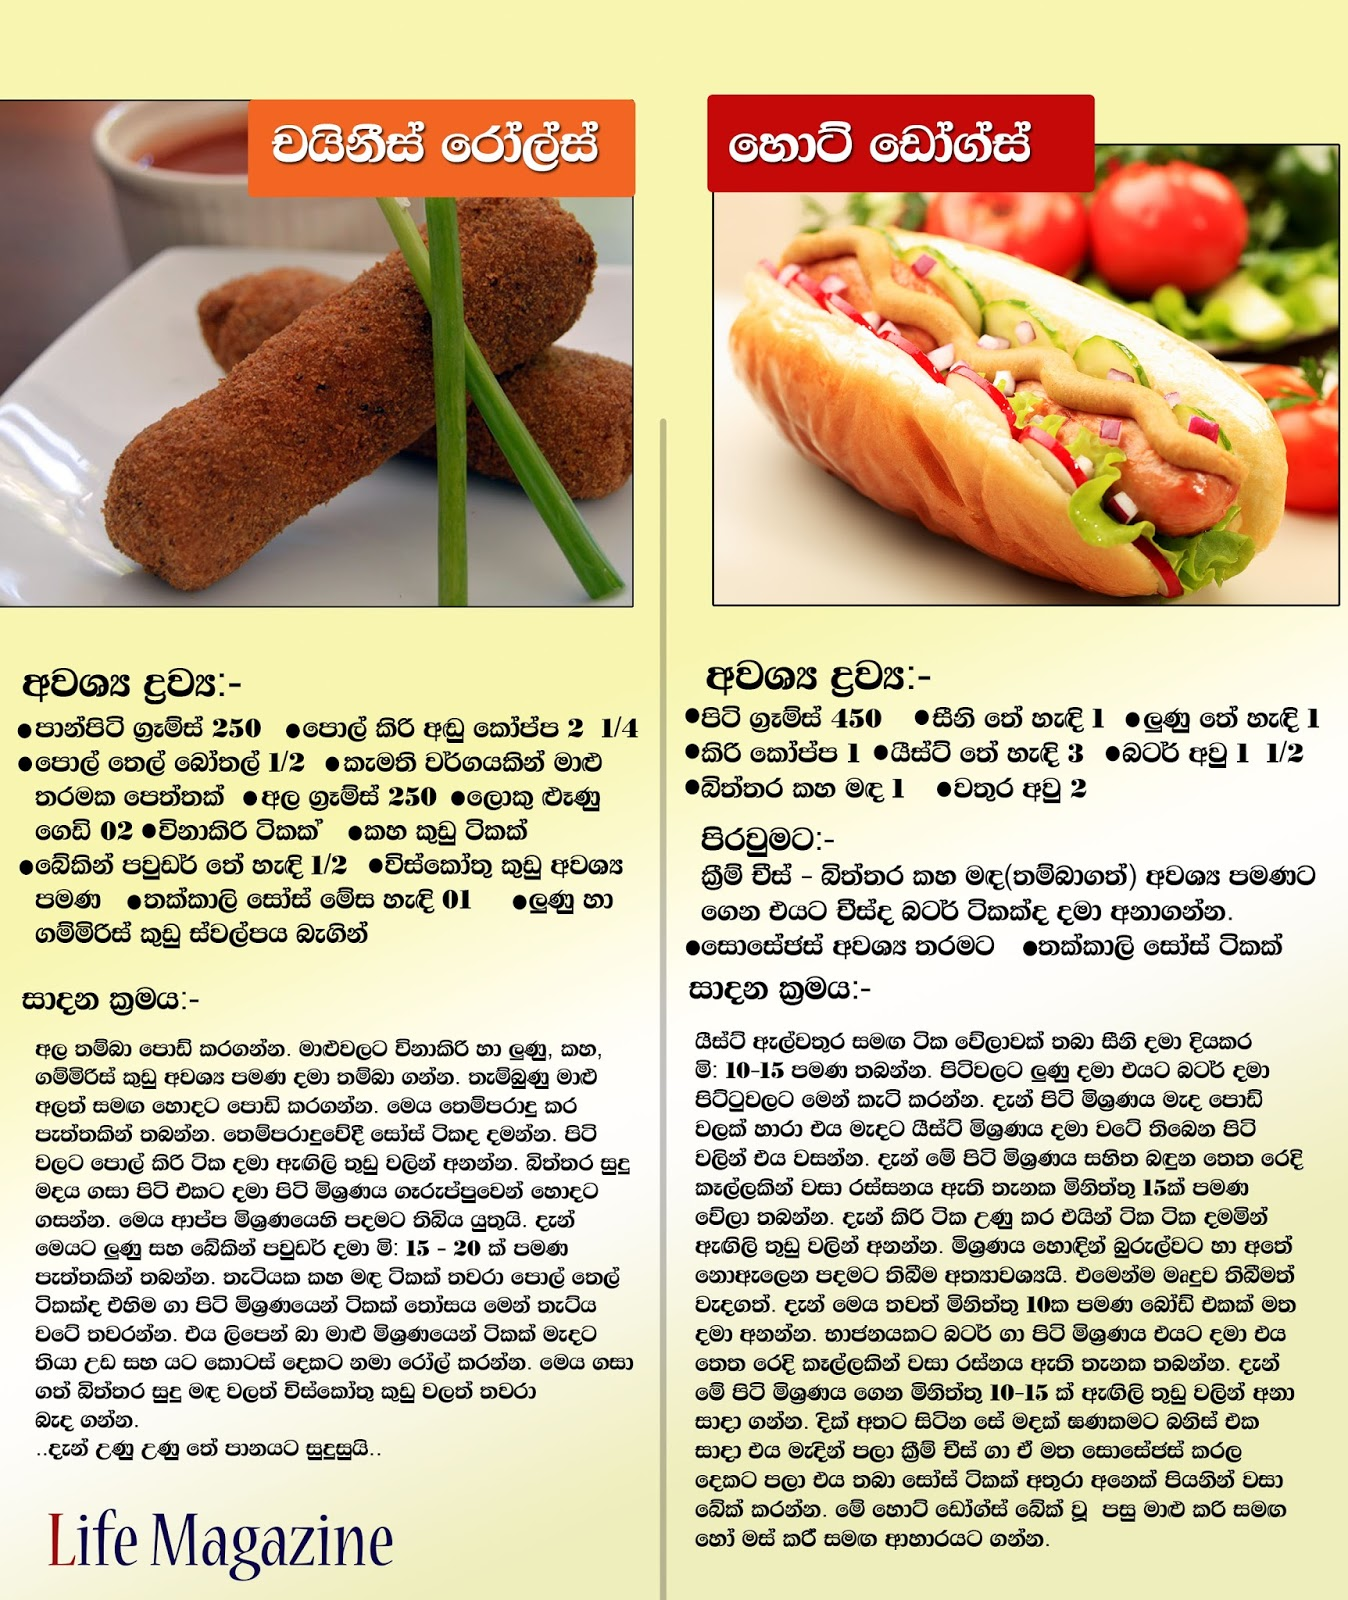 Cake funs recipes sri lanka cake recipes sinhala sri lanka cake recipes sinhala forumfinder